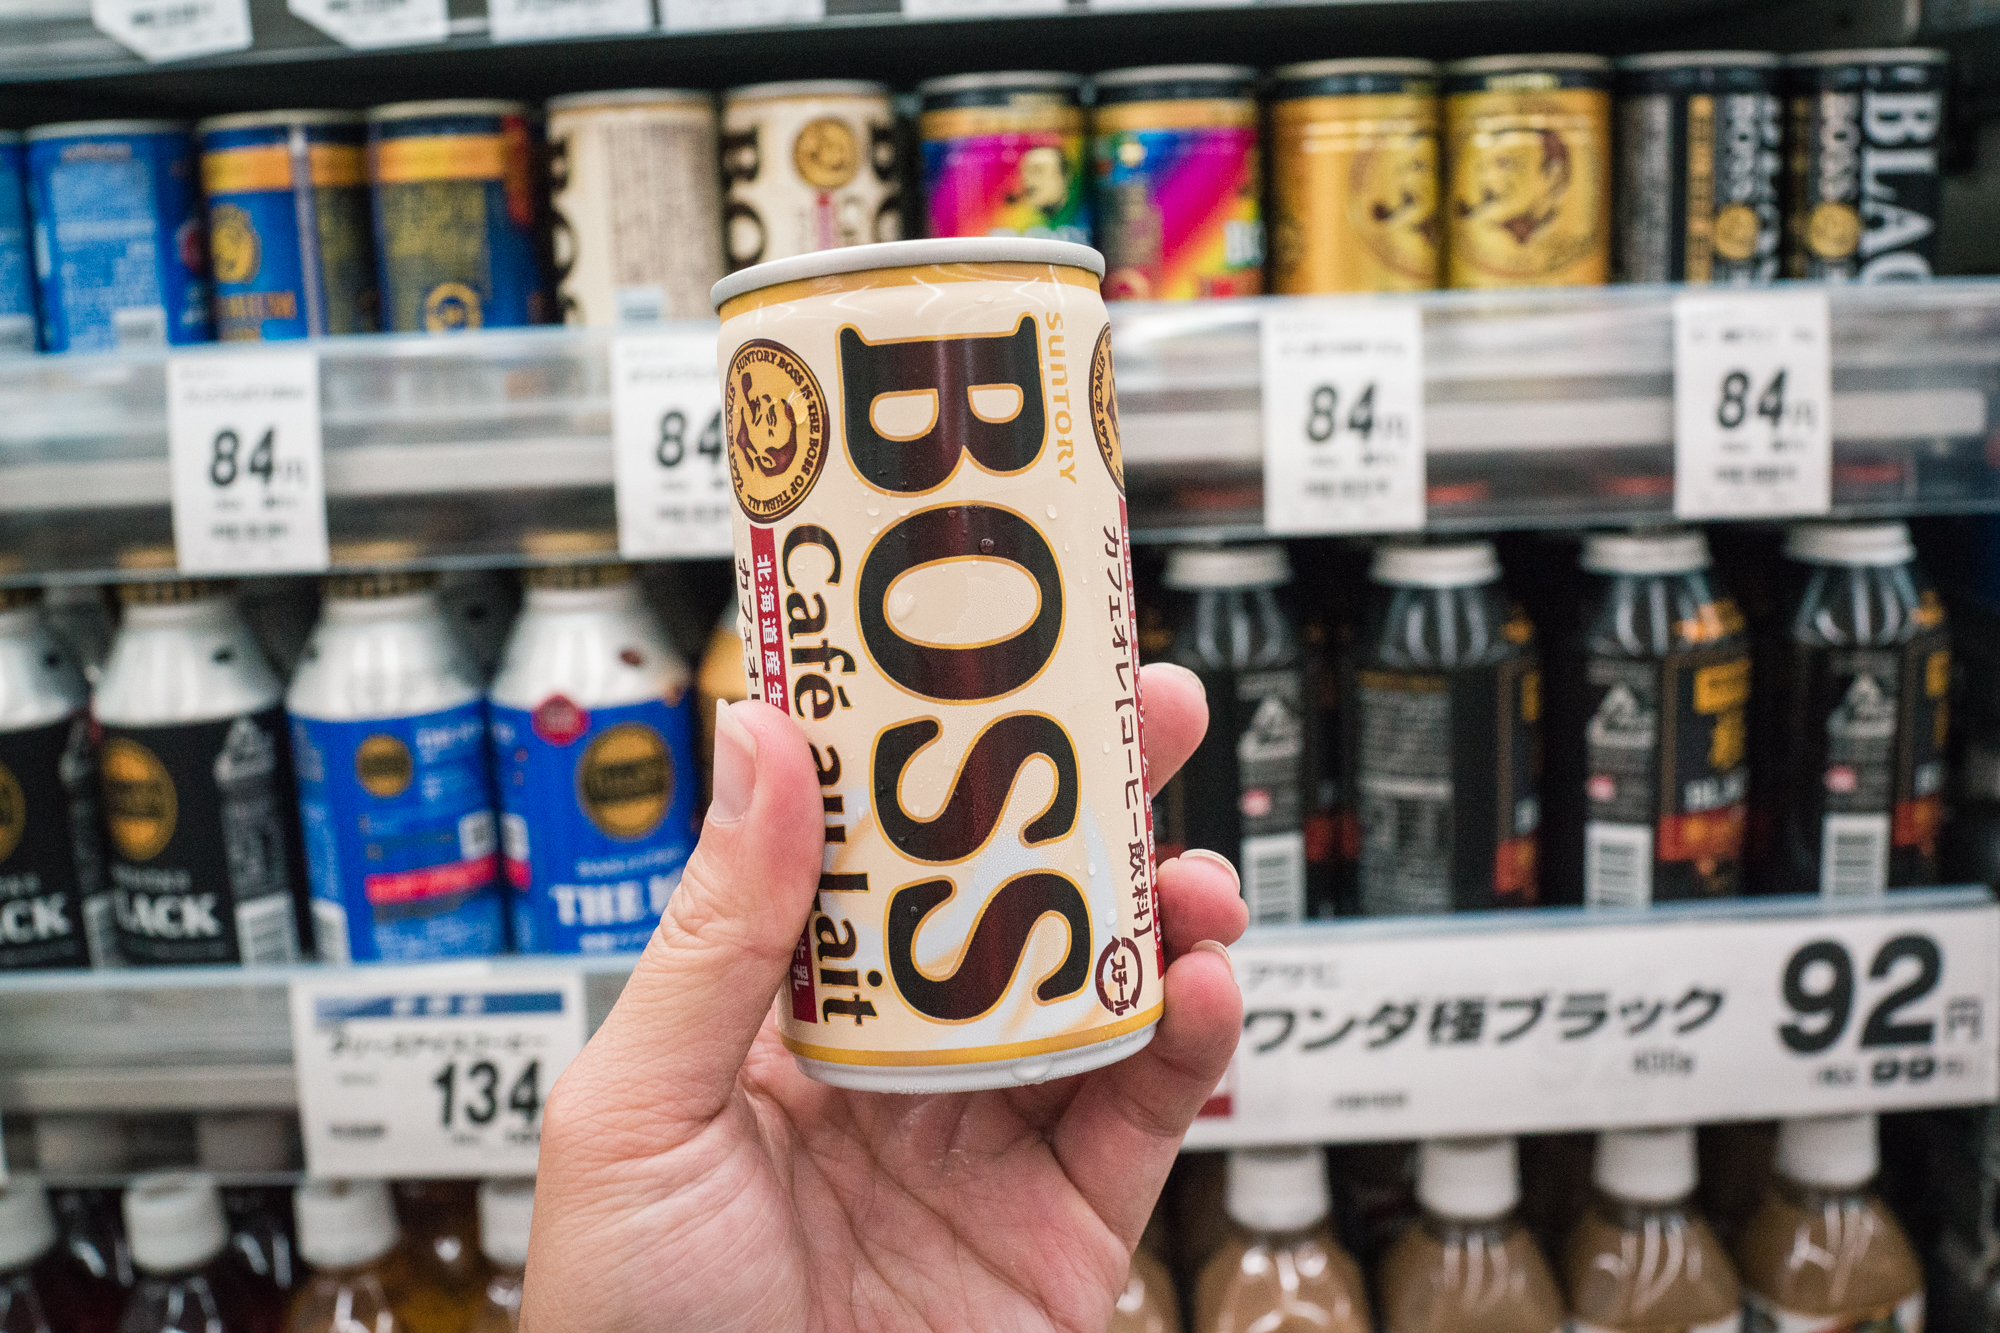 Boss Cafe au Lait in Japan